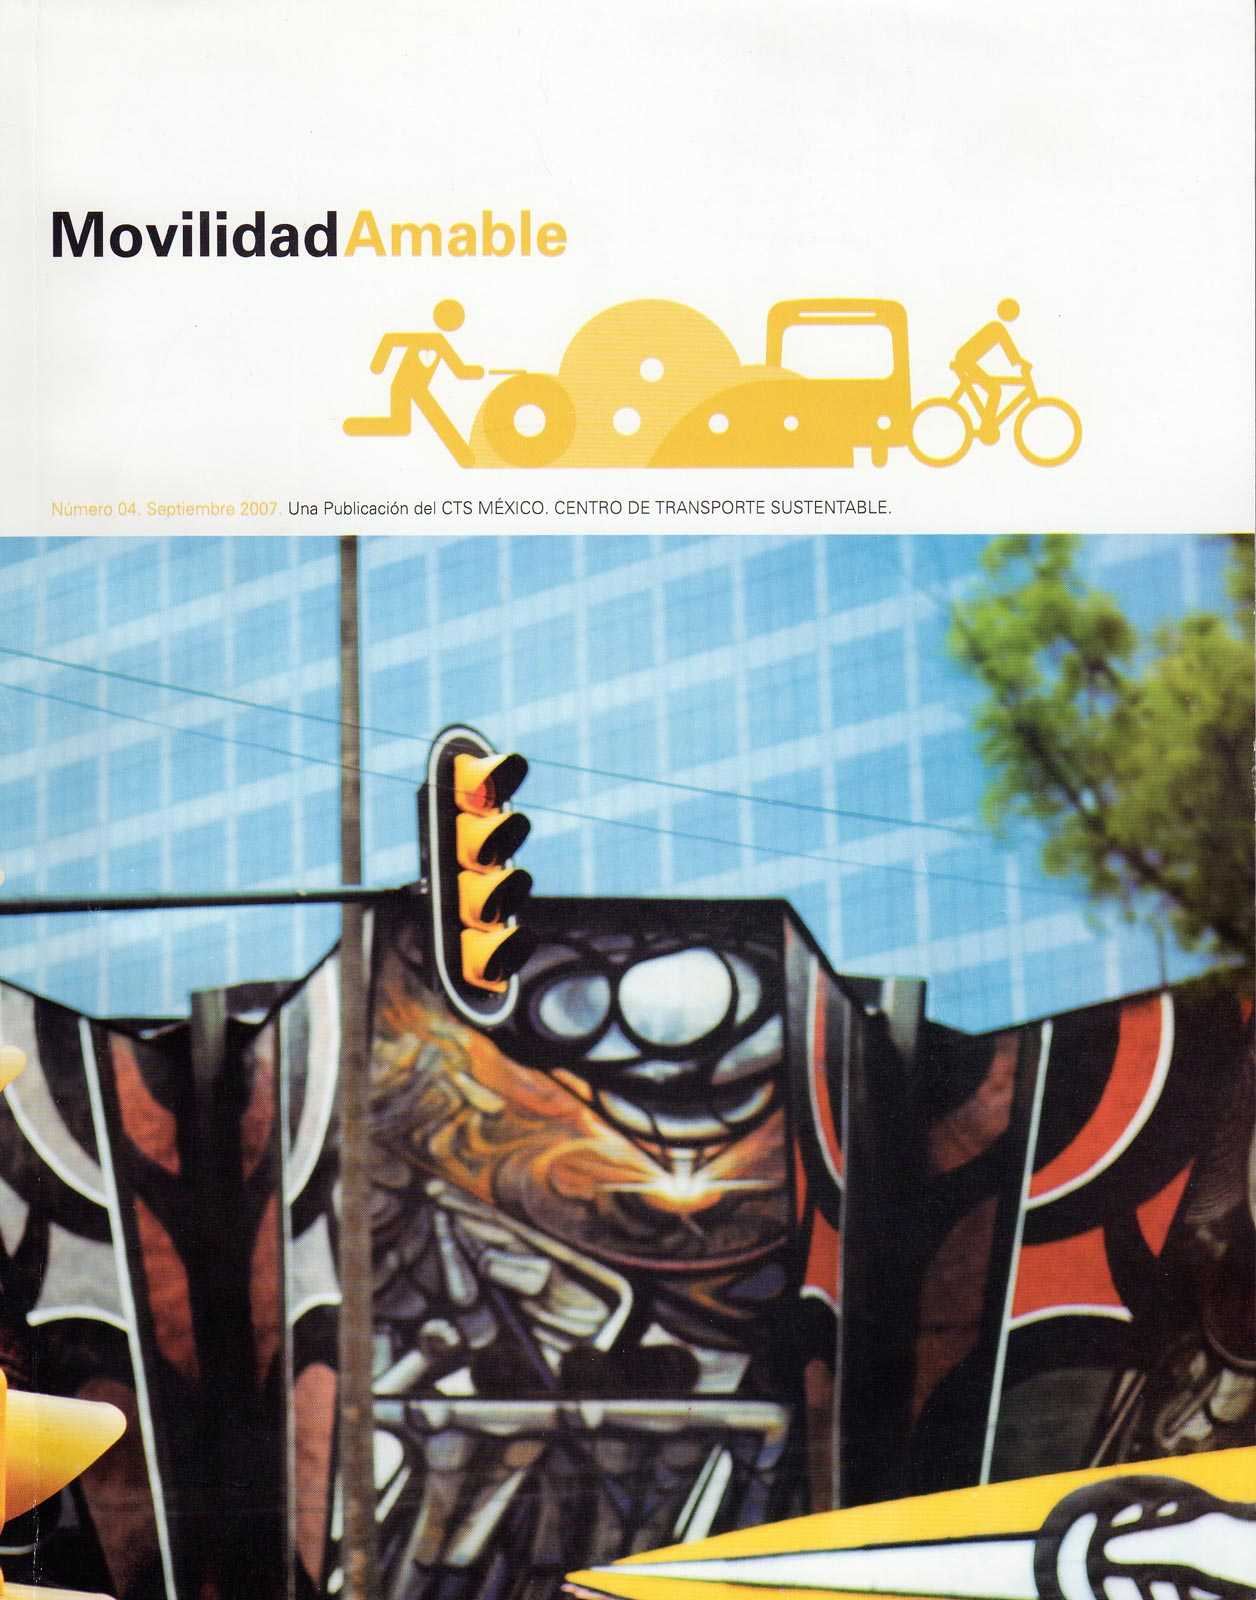 MOVILIDAD-AMABLE001.jpg